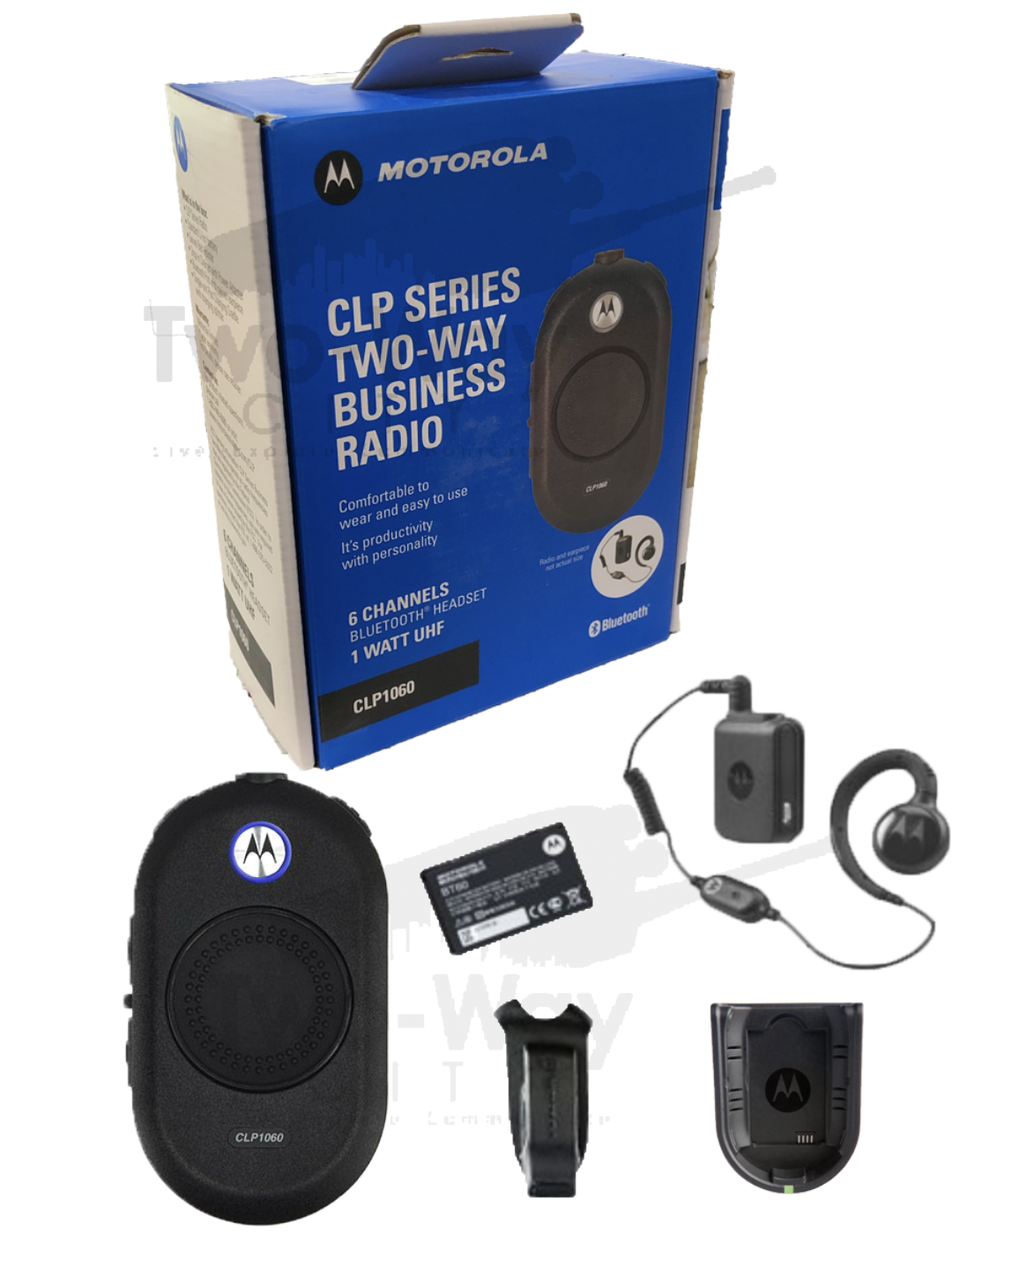 Motorola Clp1060 Uhf Two Way Radio Twowaycity Com